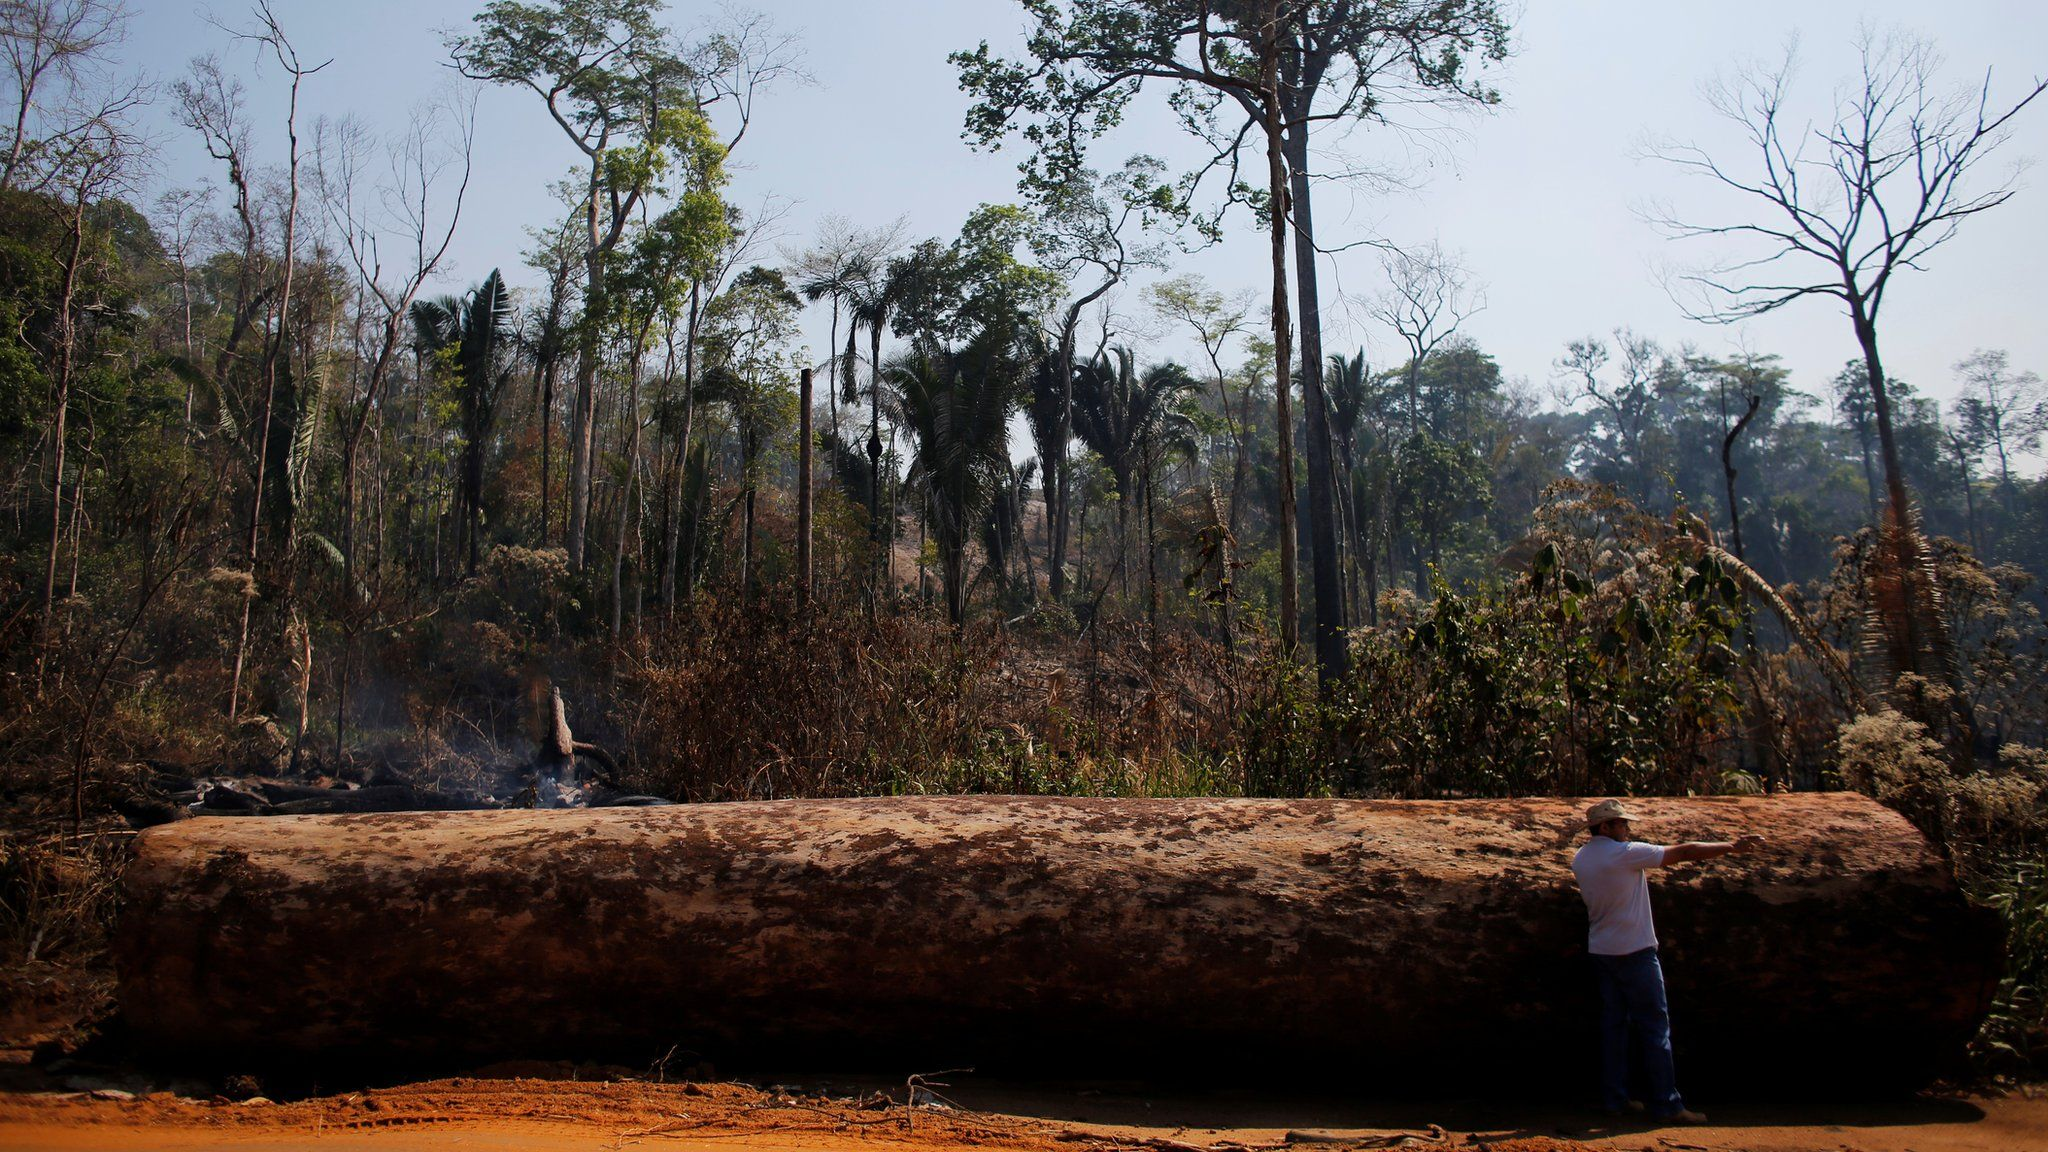 A man points next to a tree extracted illegally from the Amazon rainforest in this photo from 2015